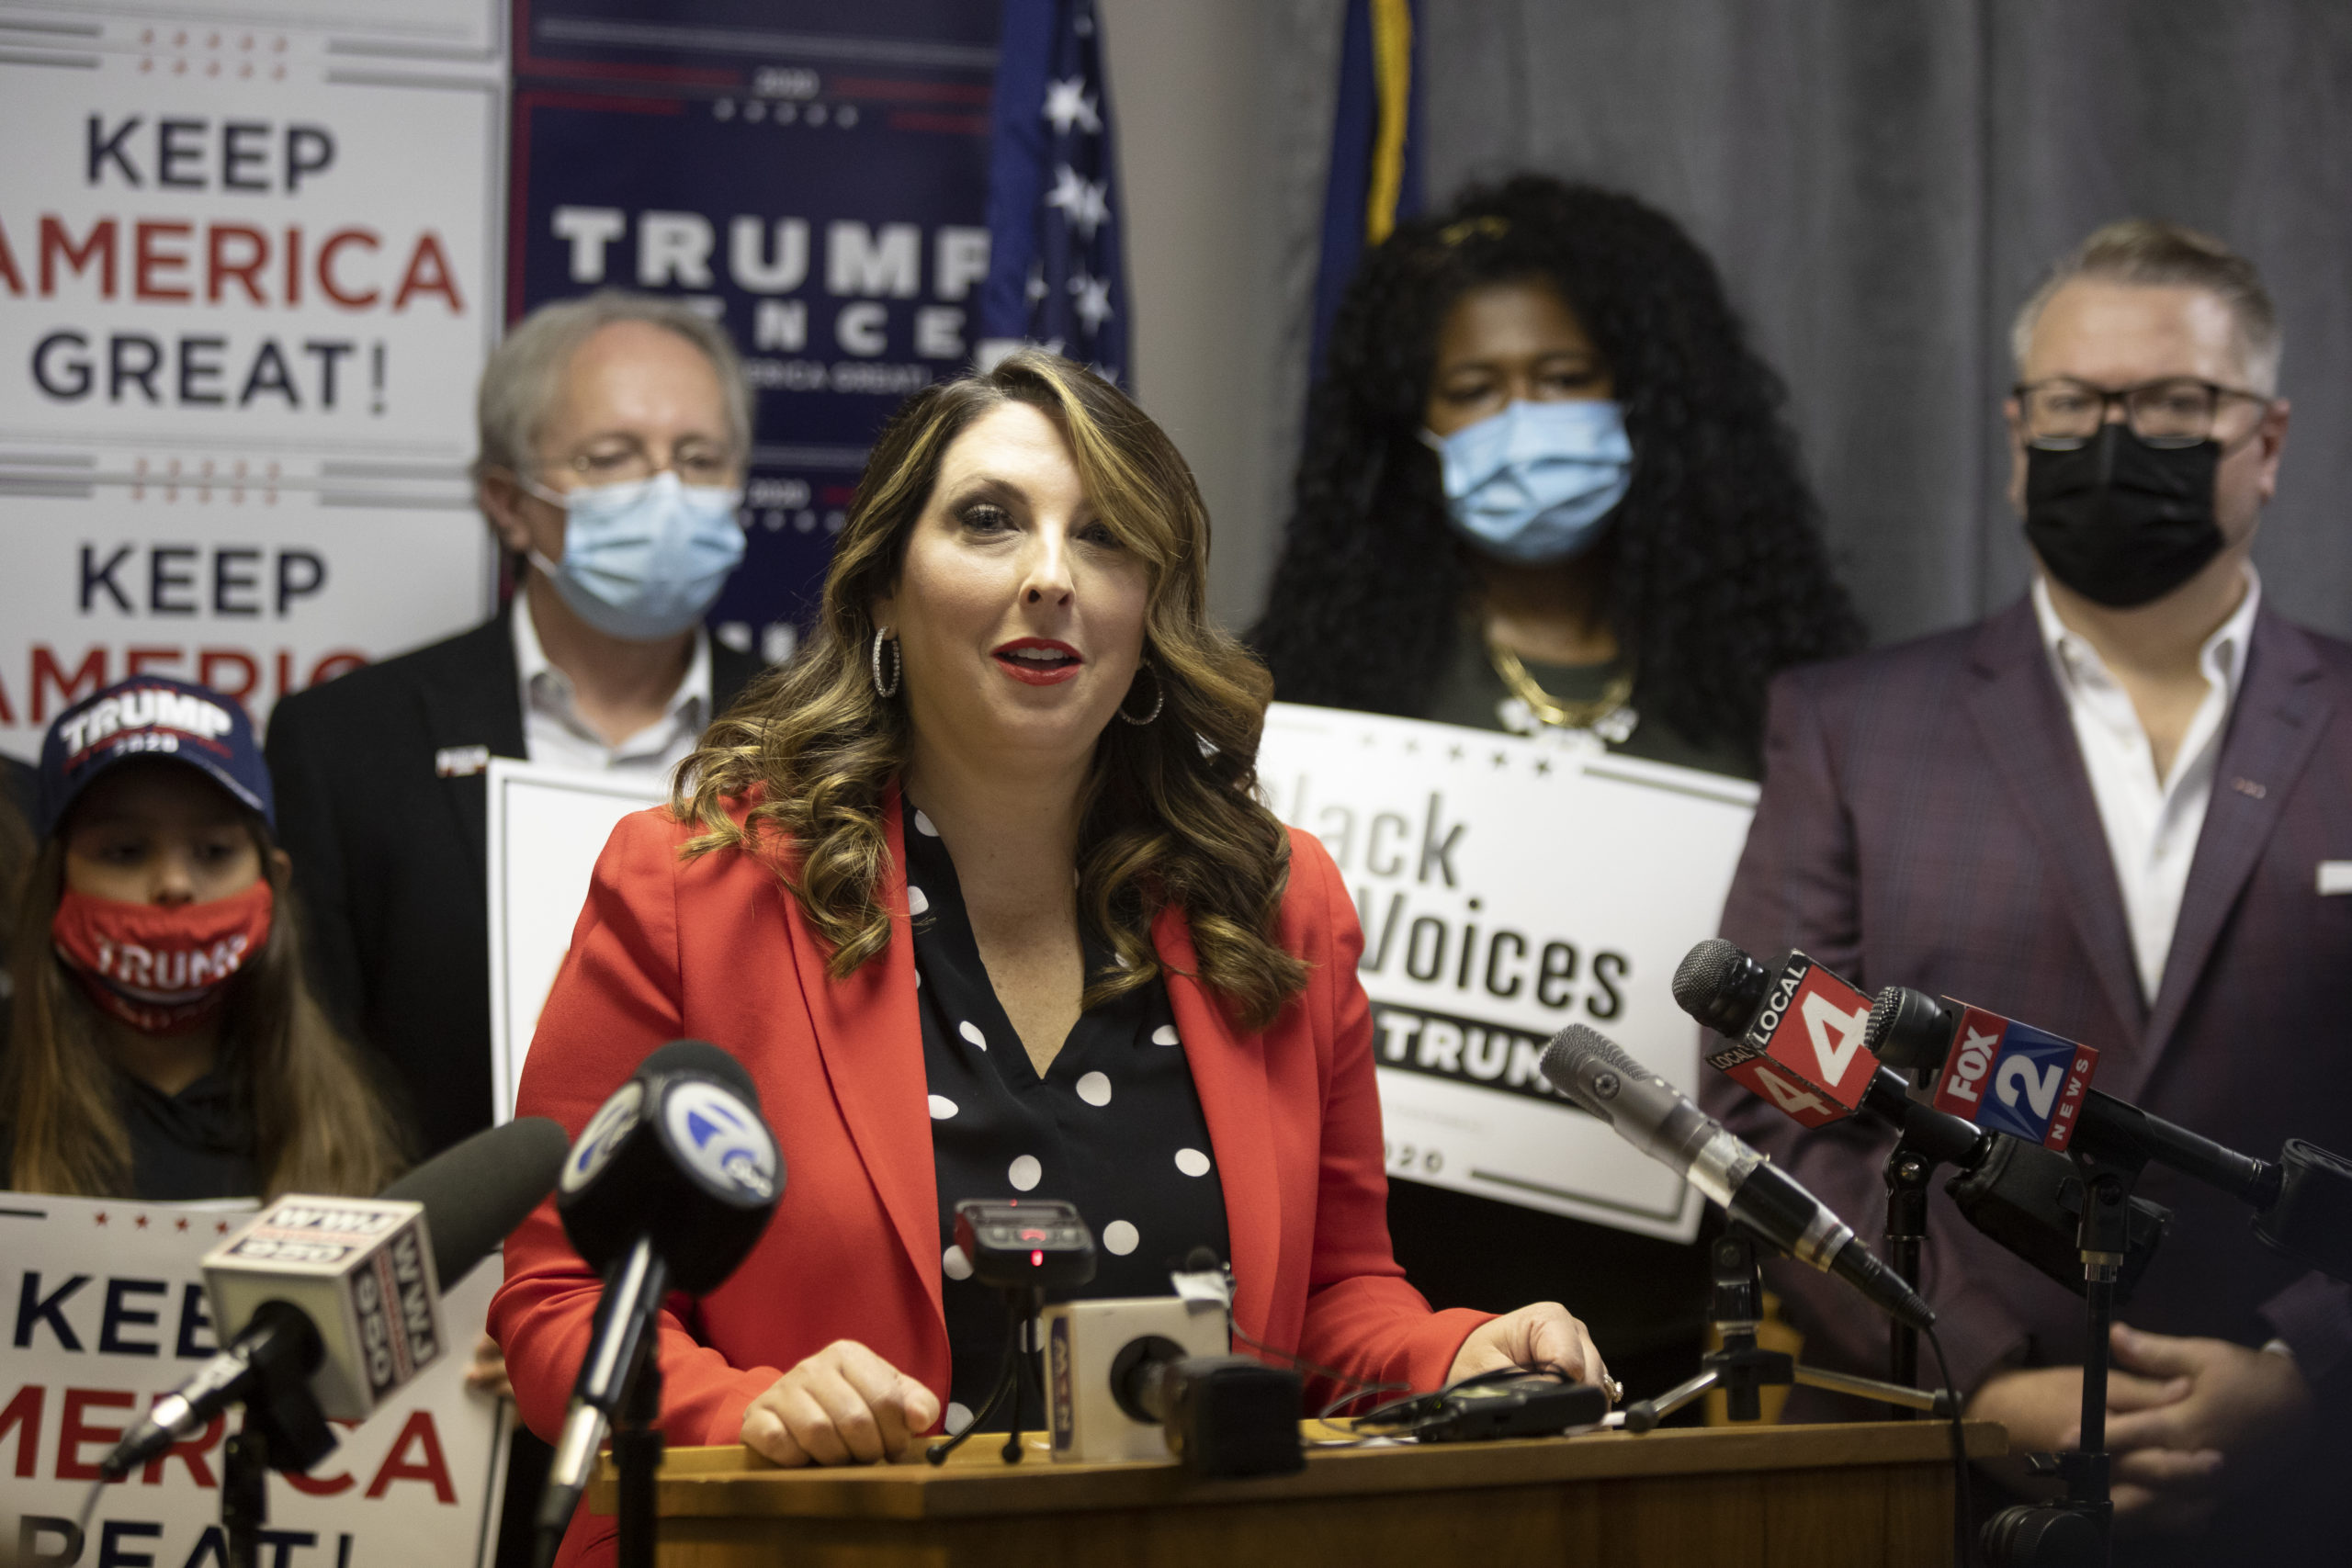 BLOOMFIELD HILLS, MI - NOVEMBER 06: Republican National Committee Chairwoman Ronna McDaniel speaks during the Trump Victory press conference on November 6, 2020 in Bloomfield Hills, Michigan. McDaniel spoke about the status of the election and intentions of pursuing allegations of ballot mishandling in Michigan and across the country. (Photo by Elaine Cromie/Getty Images)